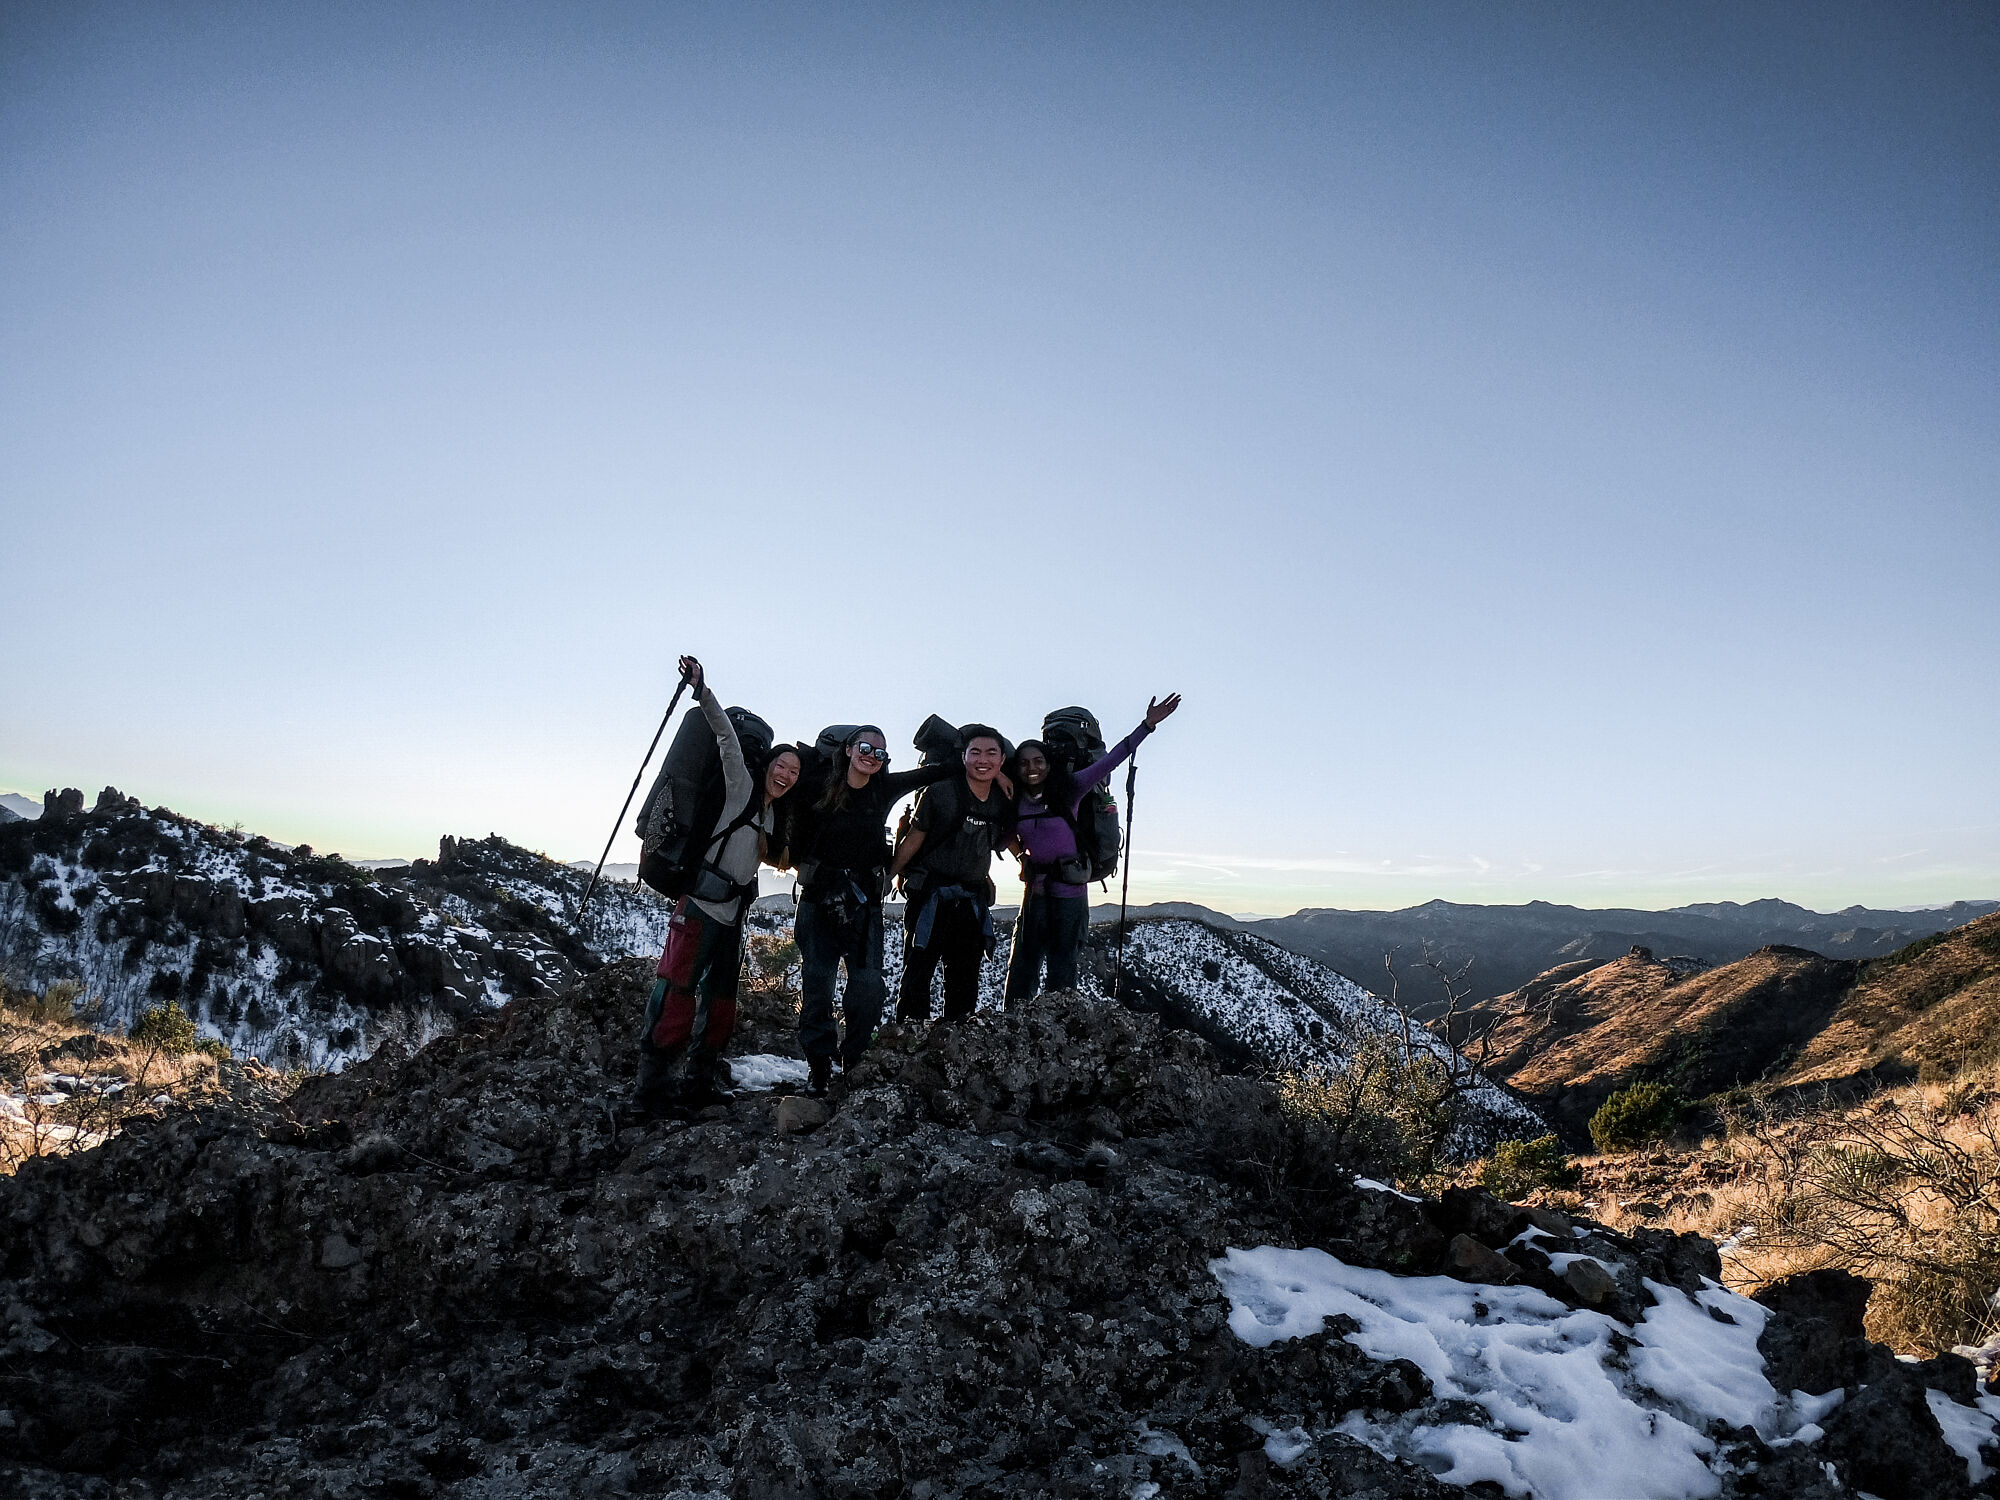 Business school students on a NOLS expedition smile for a photo on top of a snowy mound